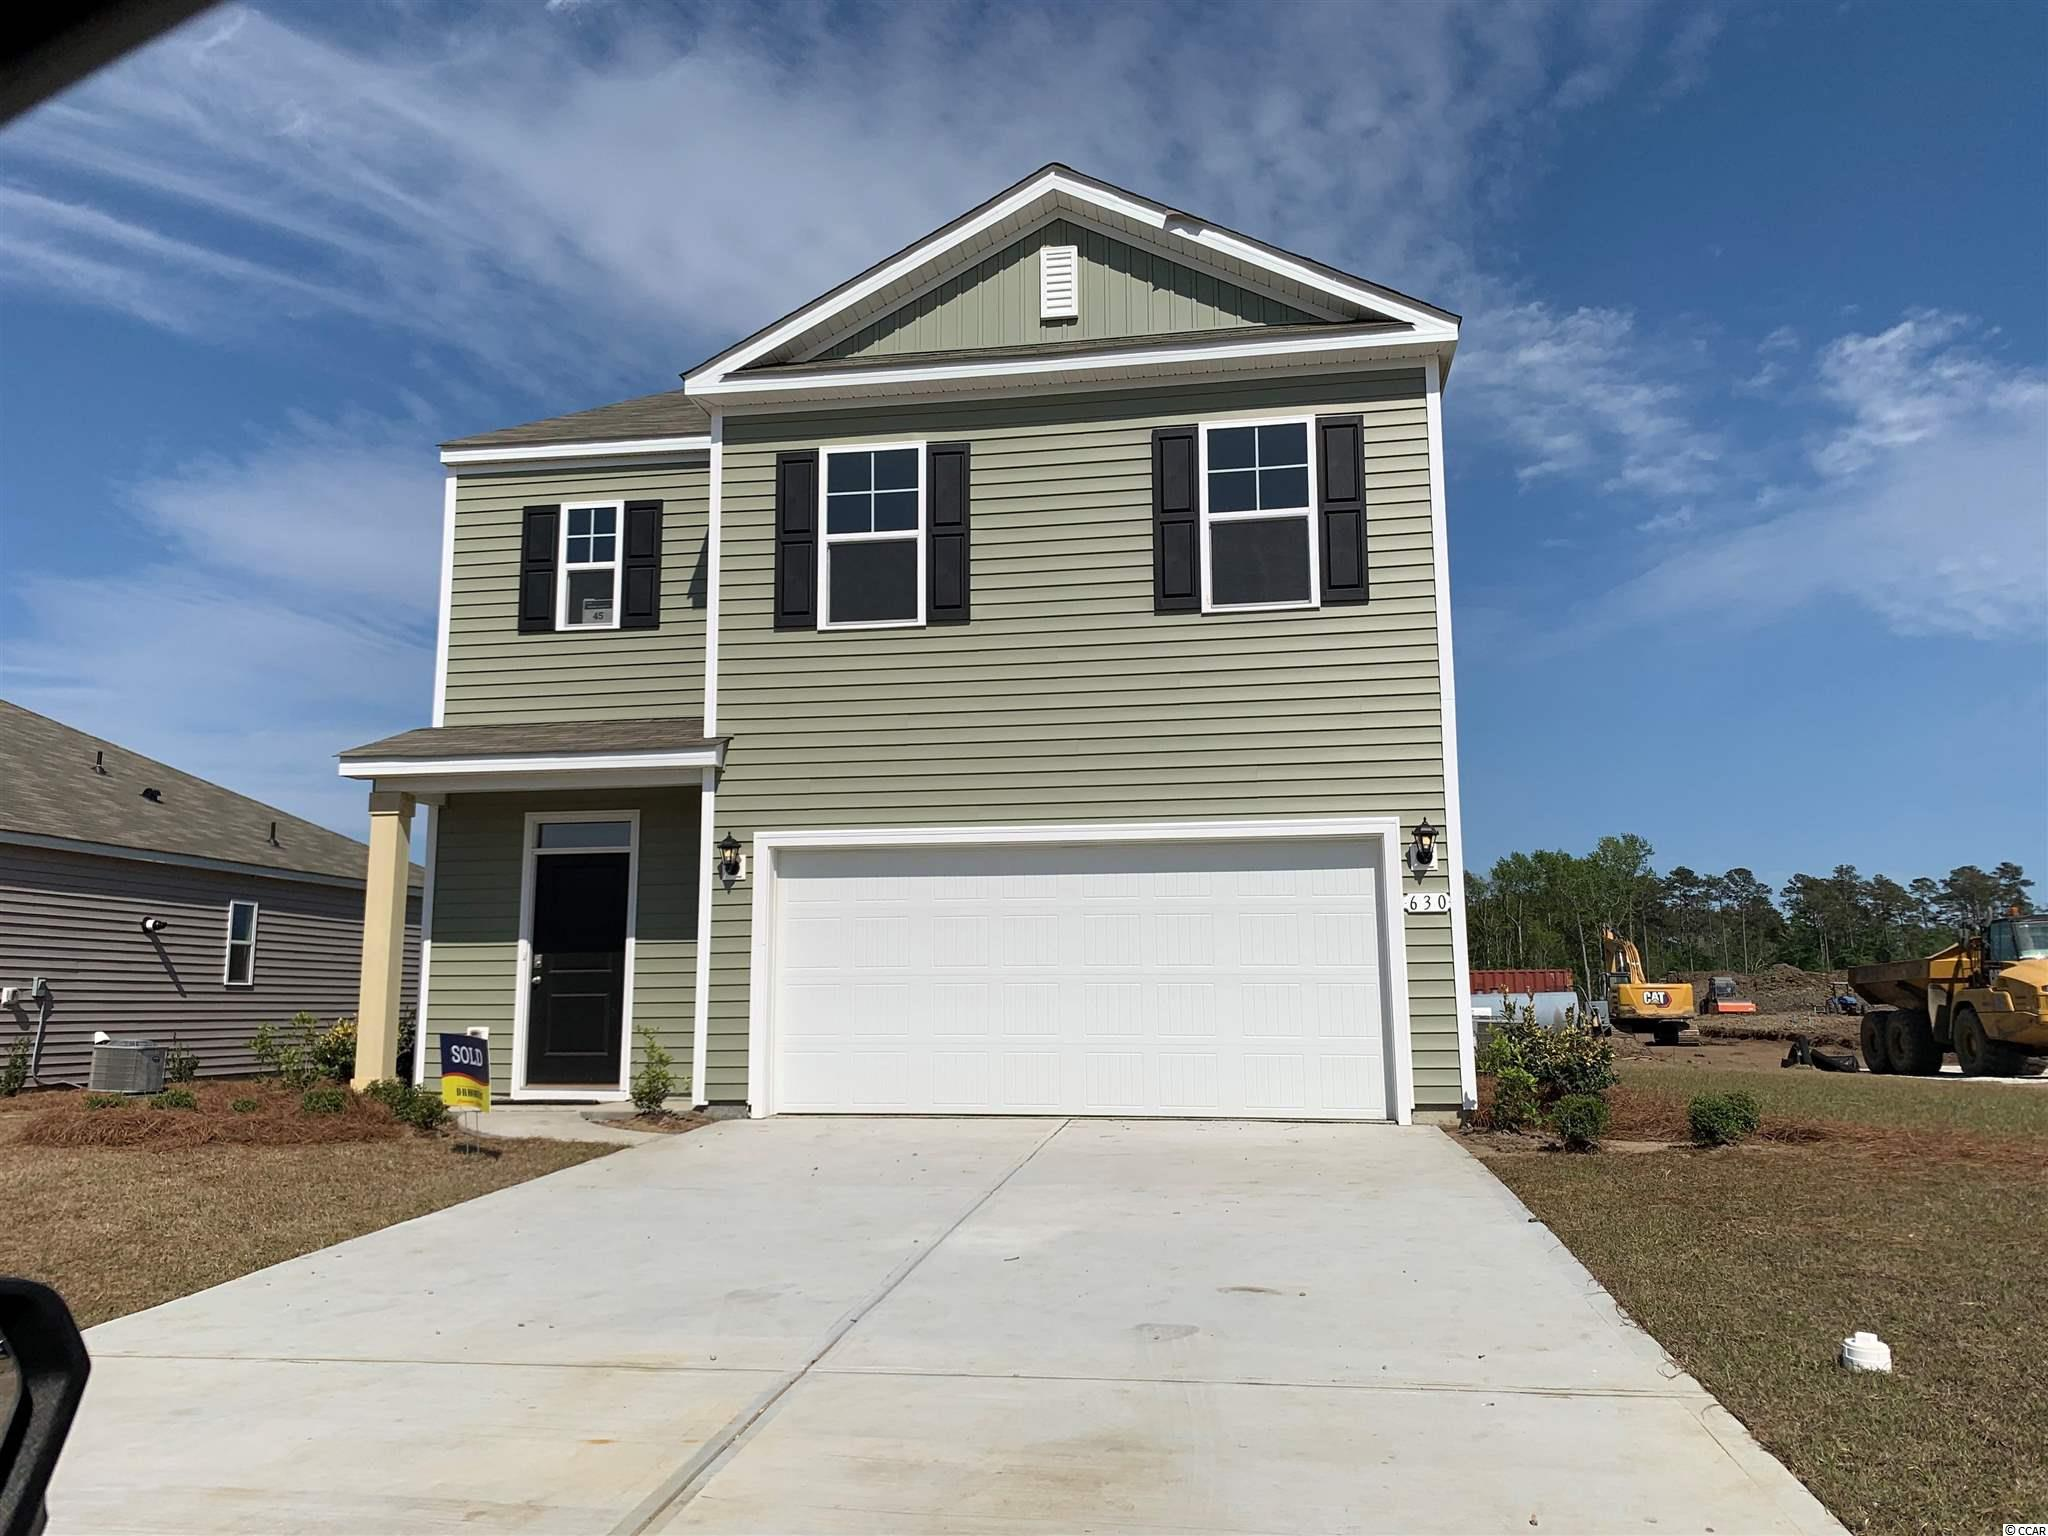 """Oyster Bluff is now selling! Brand new natural gas community just minutes away from shopping, dining, and the beach. The Robie plan boasts a large open concept main floor which includes a spacious living room, dining room, and well-appointed kitchen. Features include 36"""" painted cabinetry, a large island with room for stools underneath, granite countertops, a walk-in pantry, and laminate wood flooring throughout the main living areas. A bedroom and full bathroom on the main floor are great for guests visiting you at the beach. You are greeted by a versatile loft on the second floor, as well as the laundry room, primary bedroom suite with walk-in closet and large en suite bath, and three additional bedrooms. Simplify your life with a dream home that features our industry leading smart home technology package that comes standard with every new home. Control the thermostat, front door light and lock, and video doorbell from your smartphone or with voice commands to Alexa! It's a home that adapts to your lifestyle.  *Photos are of a similar Robie home. (Home and community information, including pricing, included features, terms, availability and amenities, are subject to change prior to sale at any time without notice or obligation. Square footages are approximate. Pictures, photographs, colors, features, and sizes are for illustration purposes only and will vary from the homes as built. Equal housing opportunity builder.)"""